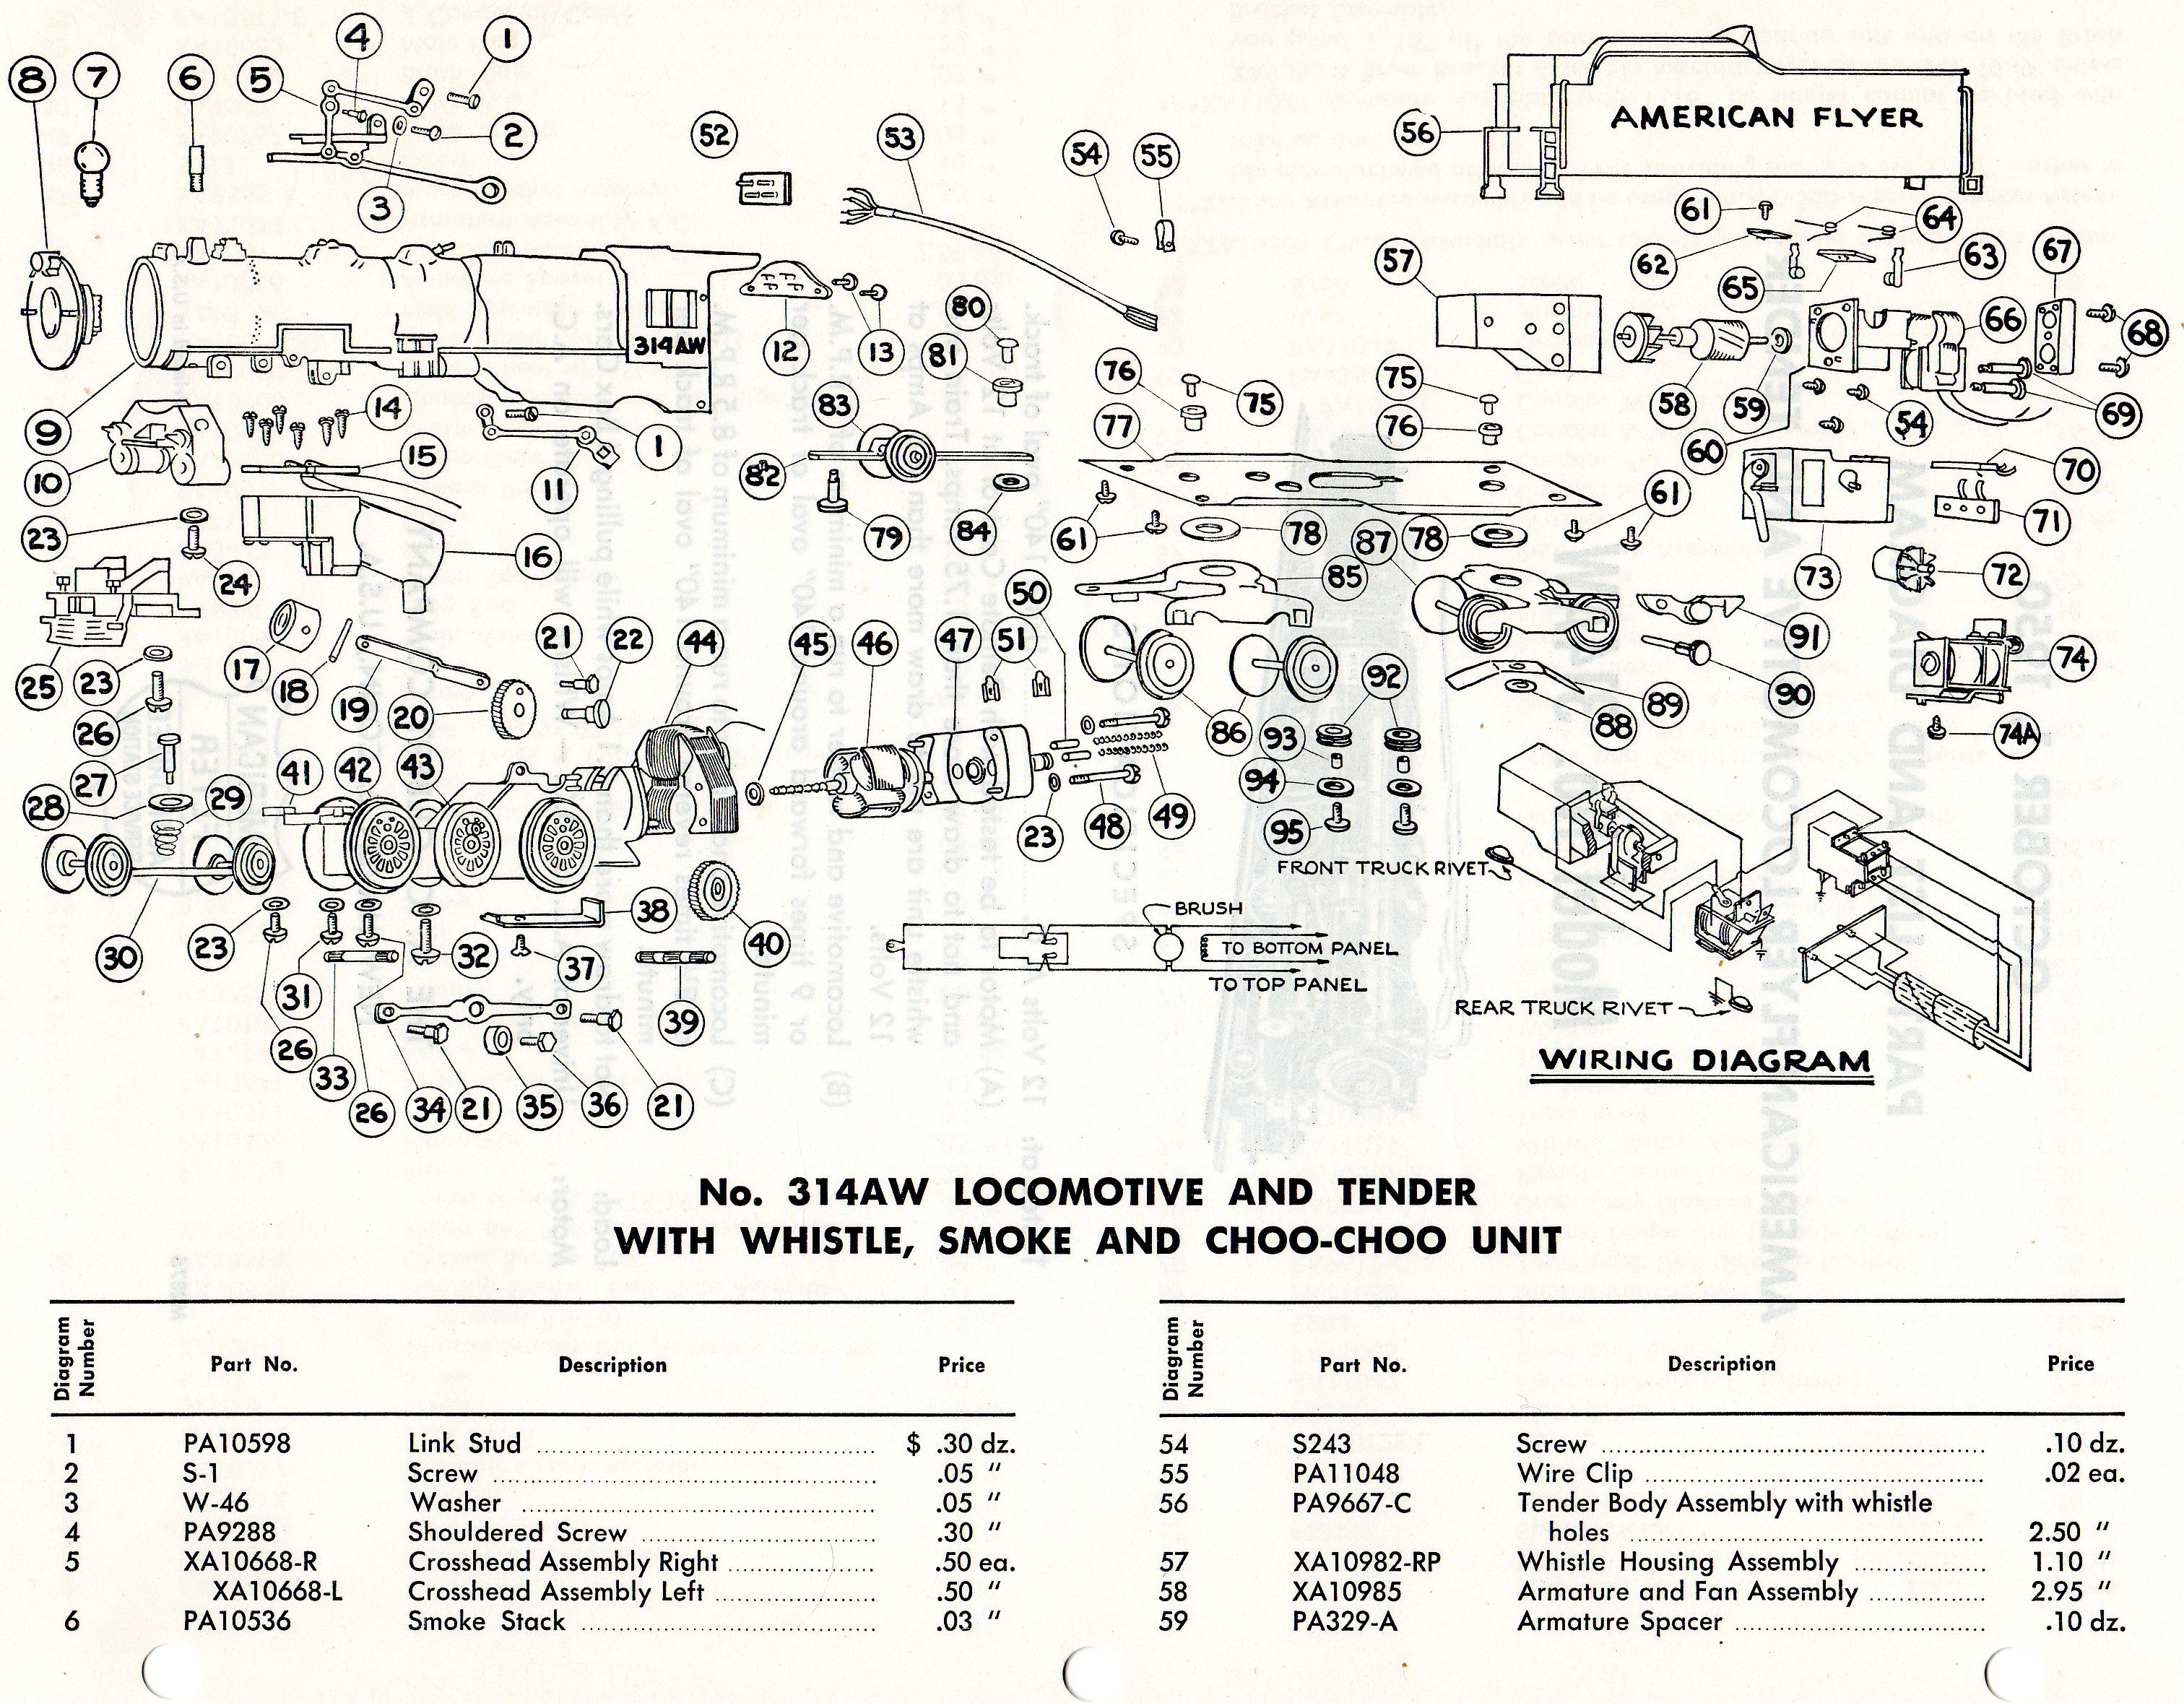 American Flyer Locomotive 314AW Parts List Diagram – Locomotive Engine Diagram Simple